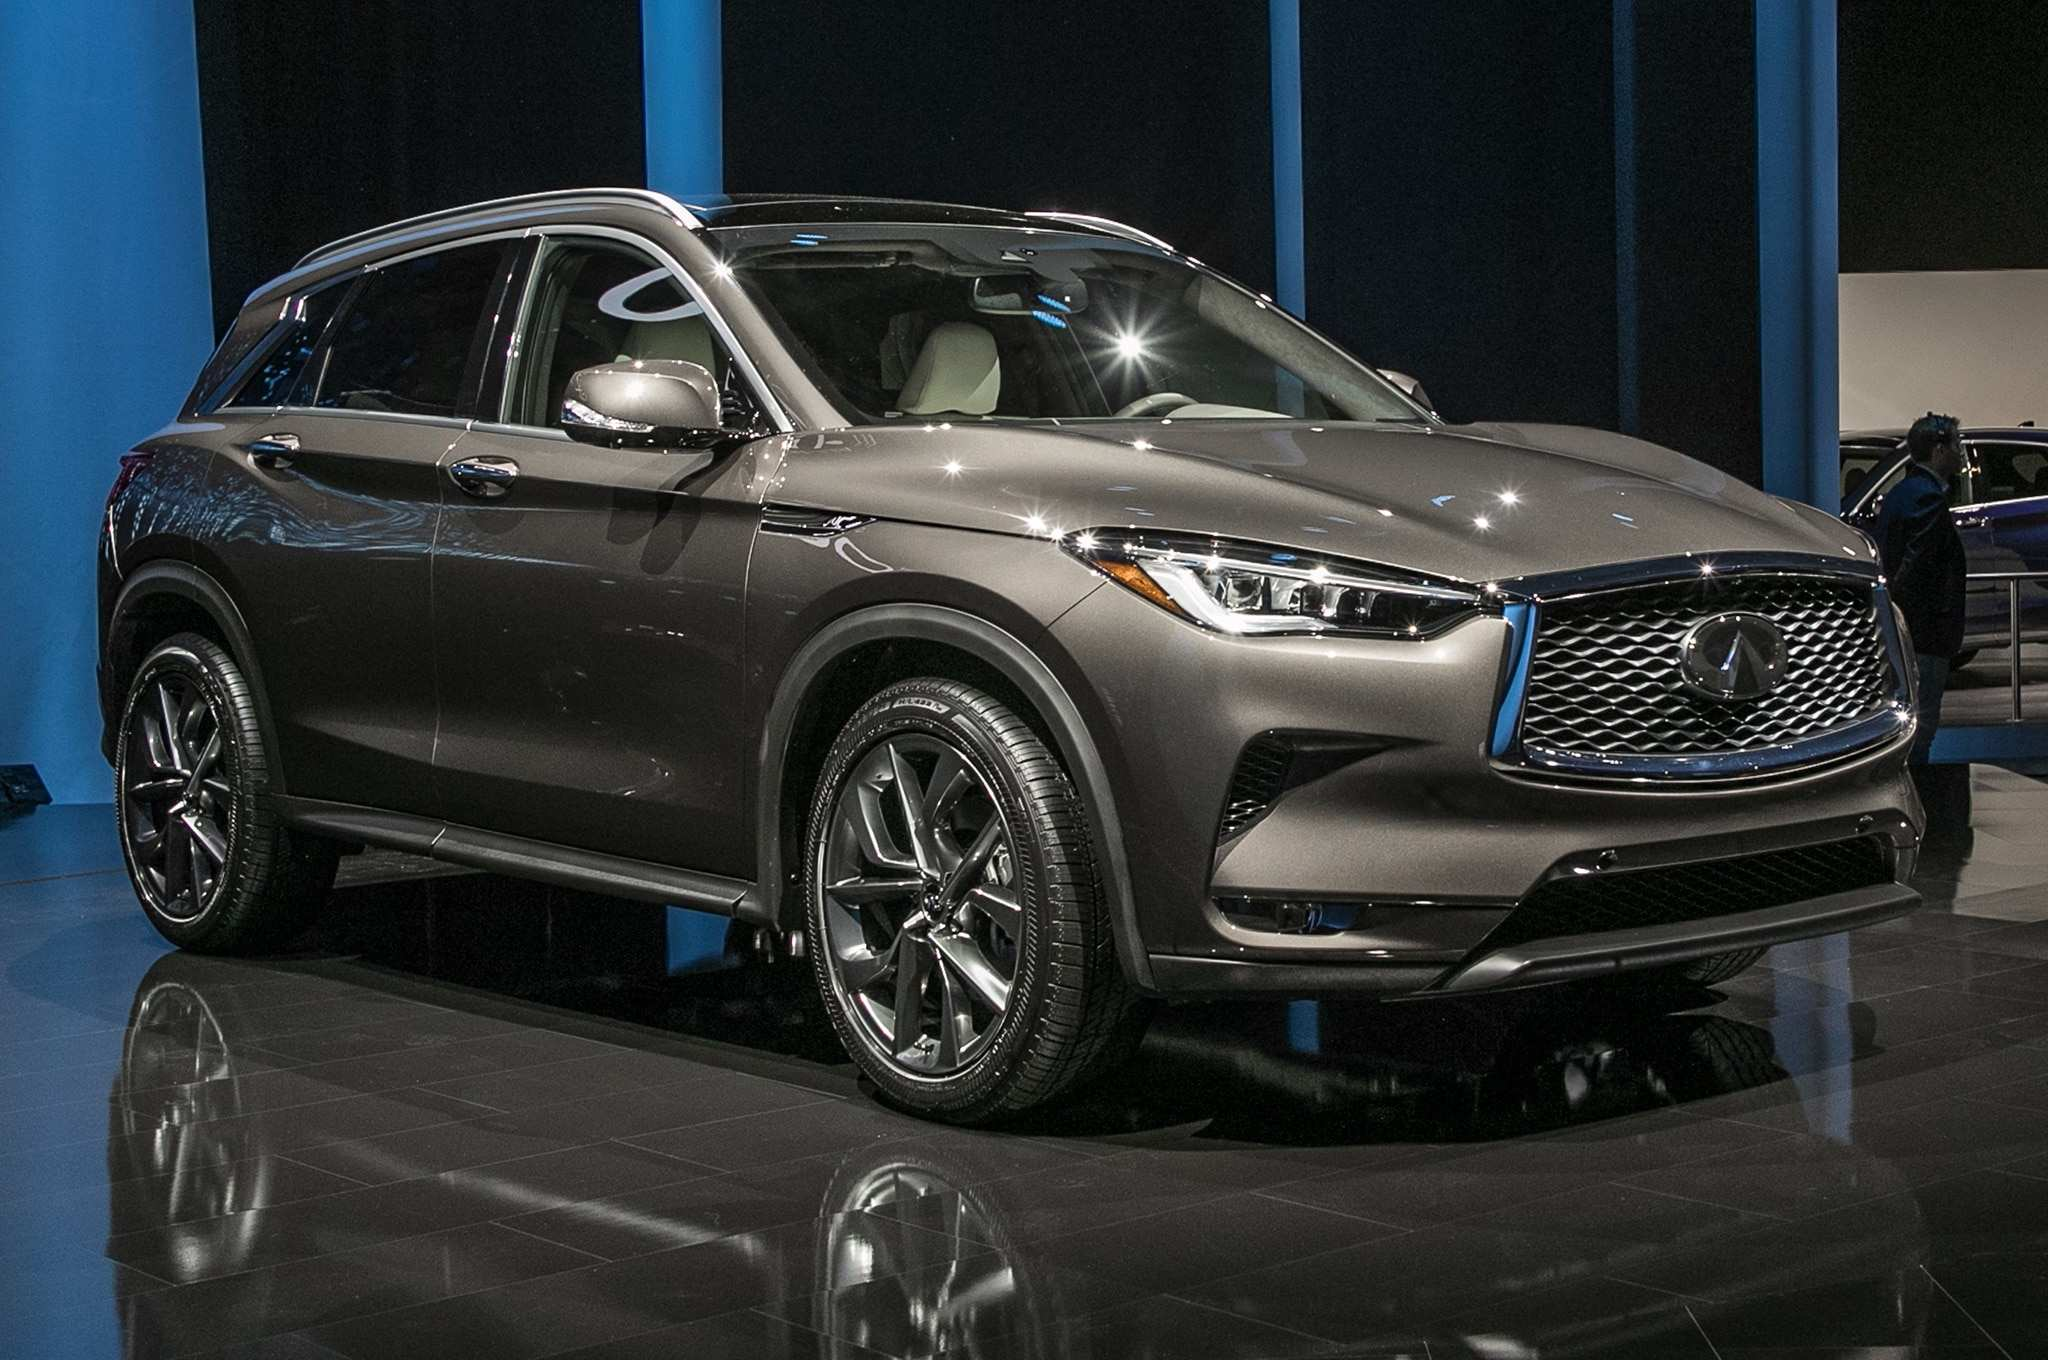 22 Concept of 2019 Infiniti Qx50 Dimensions Speed Test for 2019 Infiniti Qx50 Dimensions